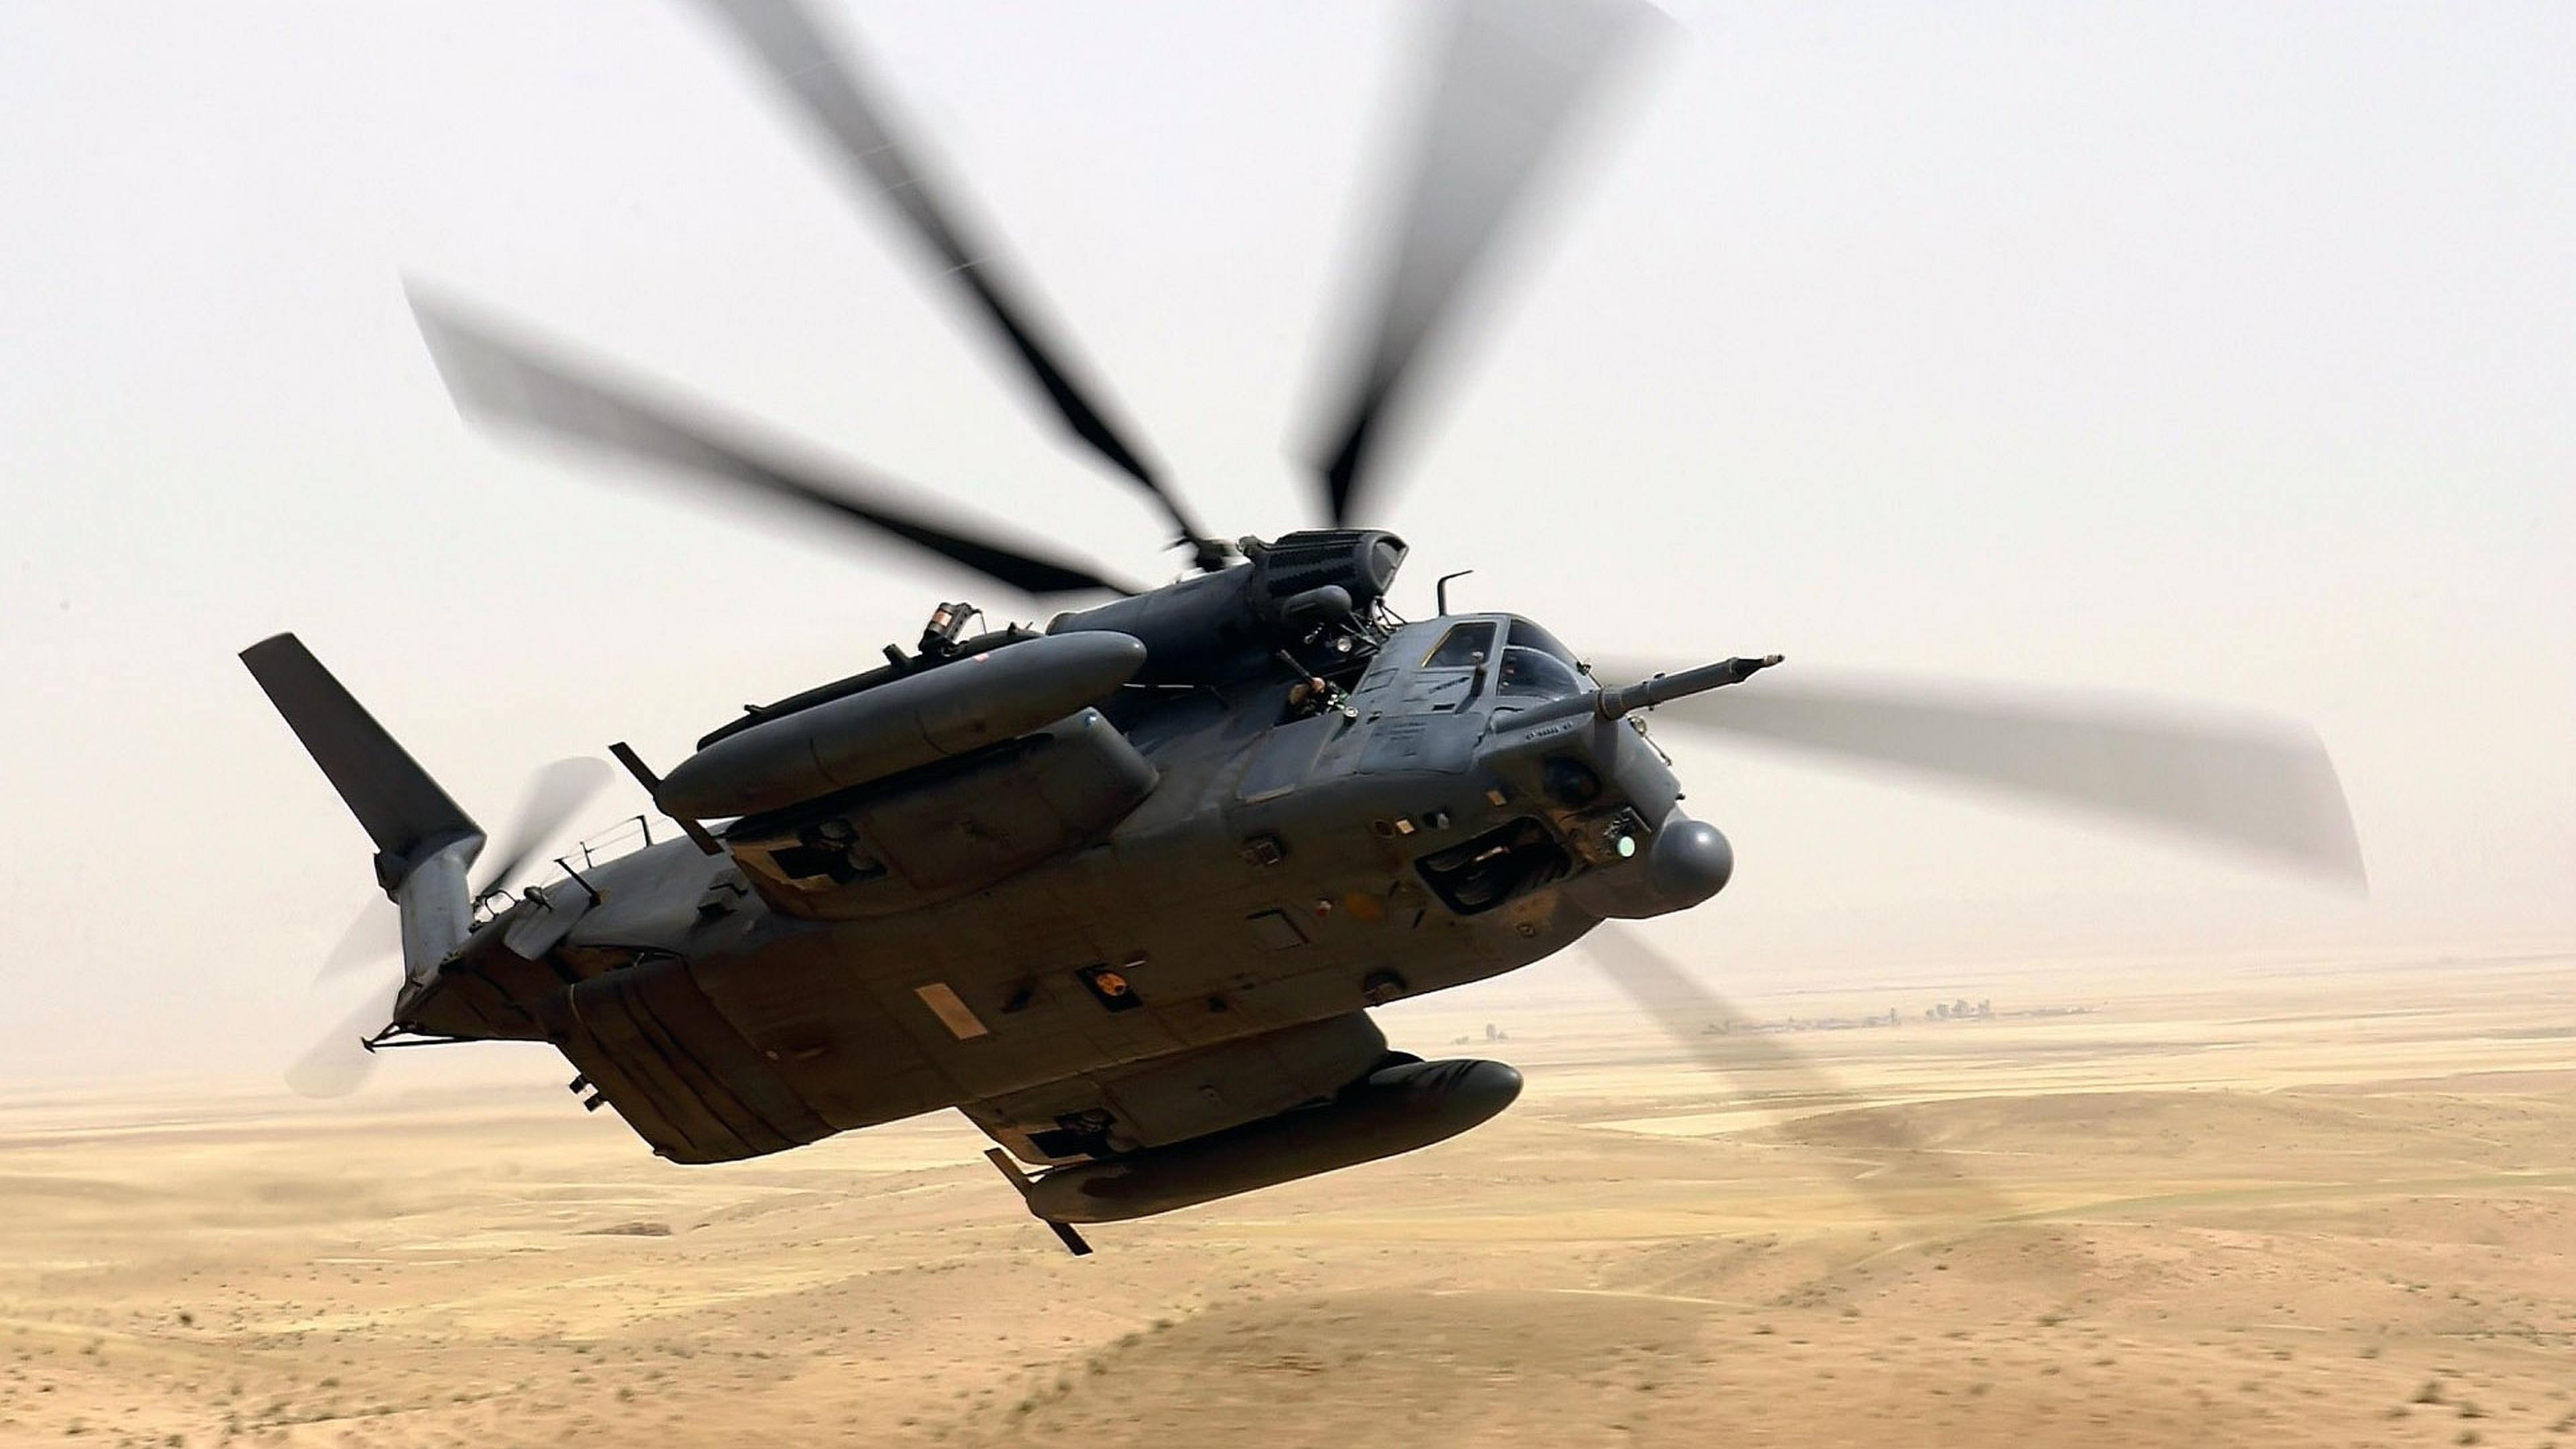 Sikorsky MH 53 Wallpapers and Background Images   stmednet 3840x2160